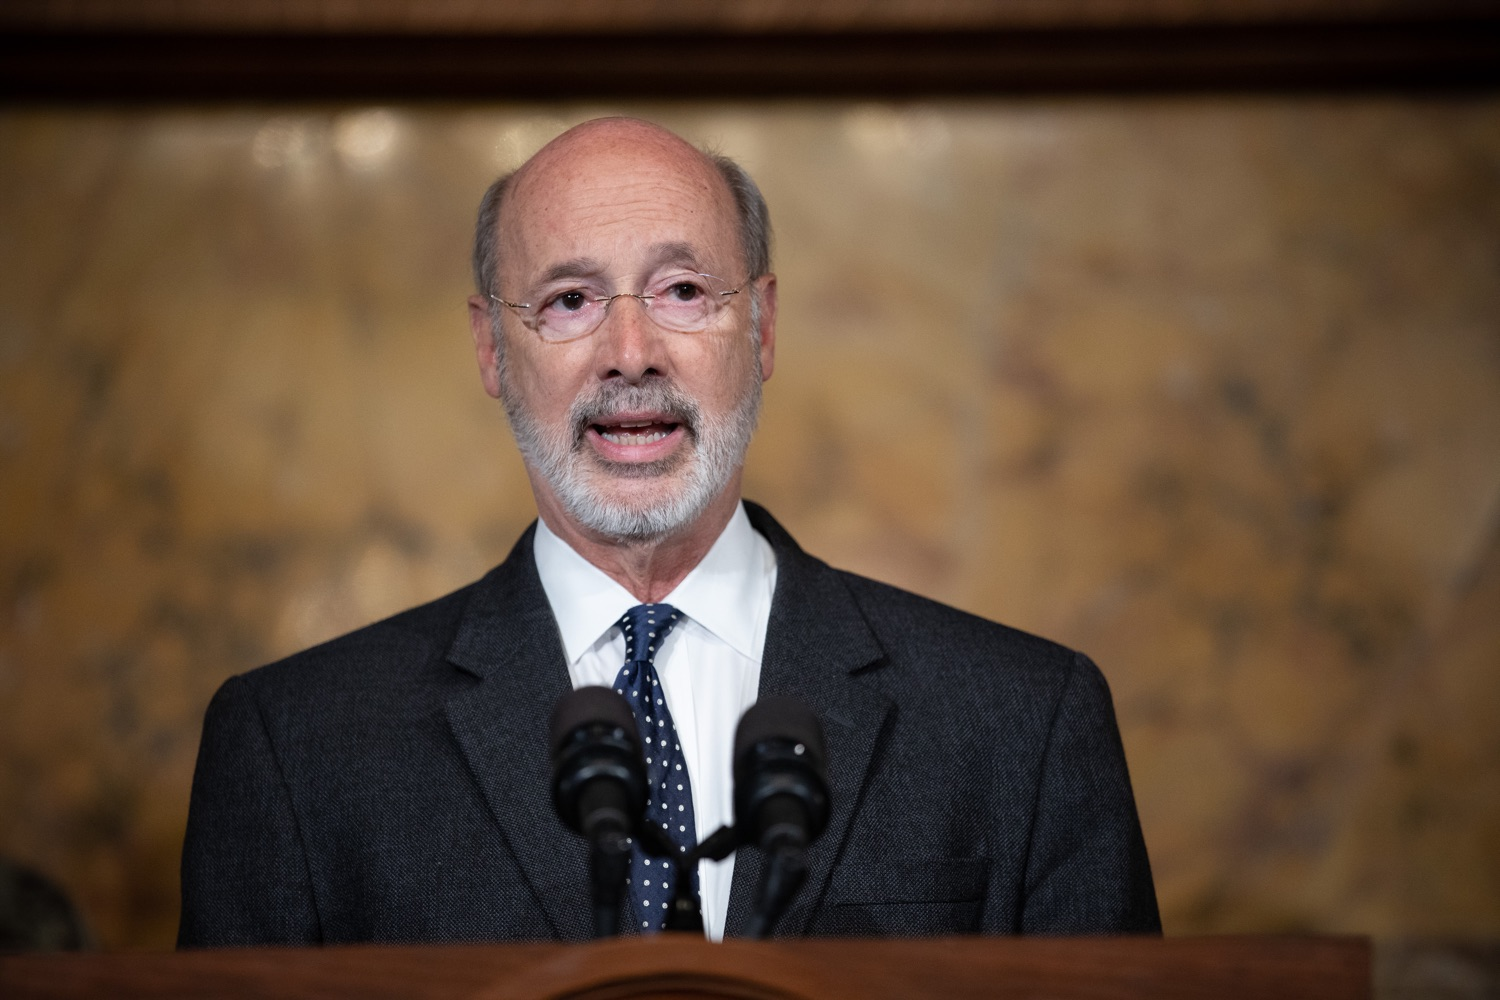 "<a href=""http://filesource.abacast.com/commonwealthofpa/photo/17423_gov_trip_recap_dz_006.jpg"" target=""_blank"">⇣ Download Photo<br></a>Harrisburg, PA Governor Tom Wolf speaking about his recent visit to Lithuania and Poland.    Governor Tom Wolf today highlighted the second half of his trip abroad, including visiting with more than 500 PA National Guard (PNG) troops in Poland, and honoring the Tree of Life synagogue victims at the Auschwitz-Birkenau Memorial. Tuesday, September 17, 2019"